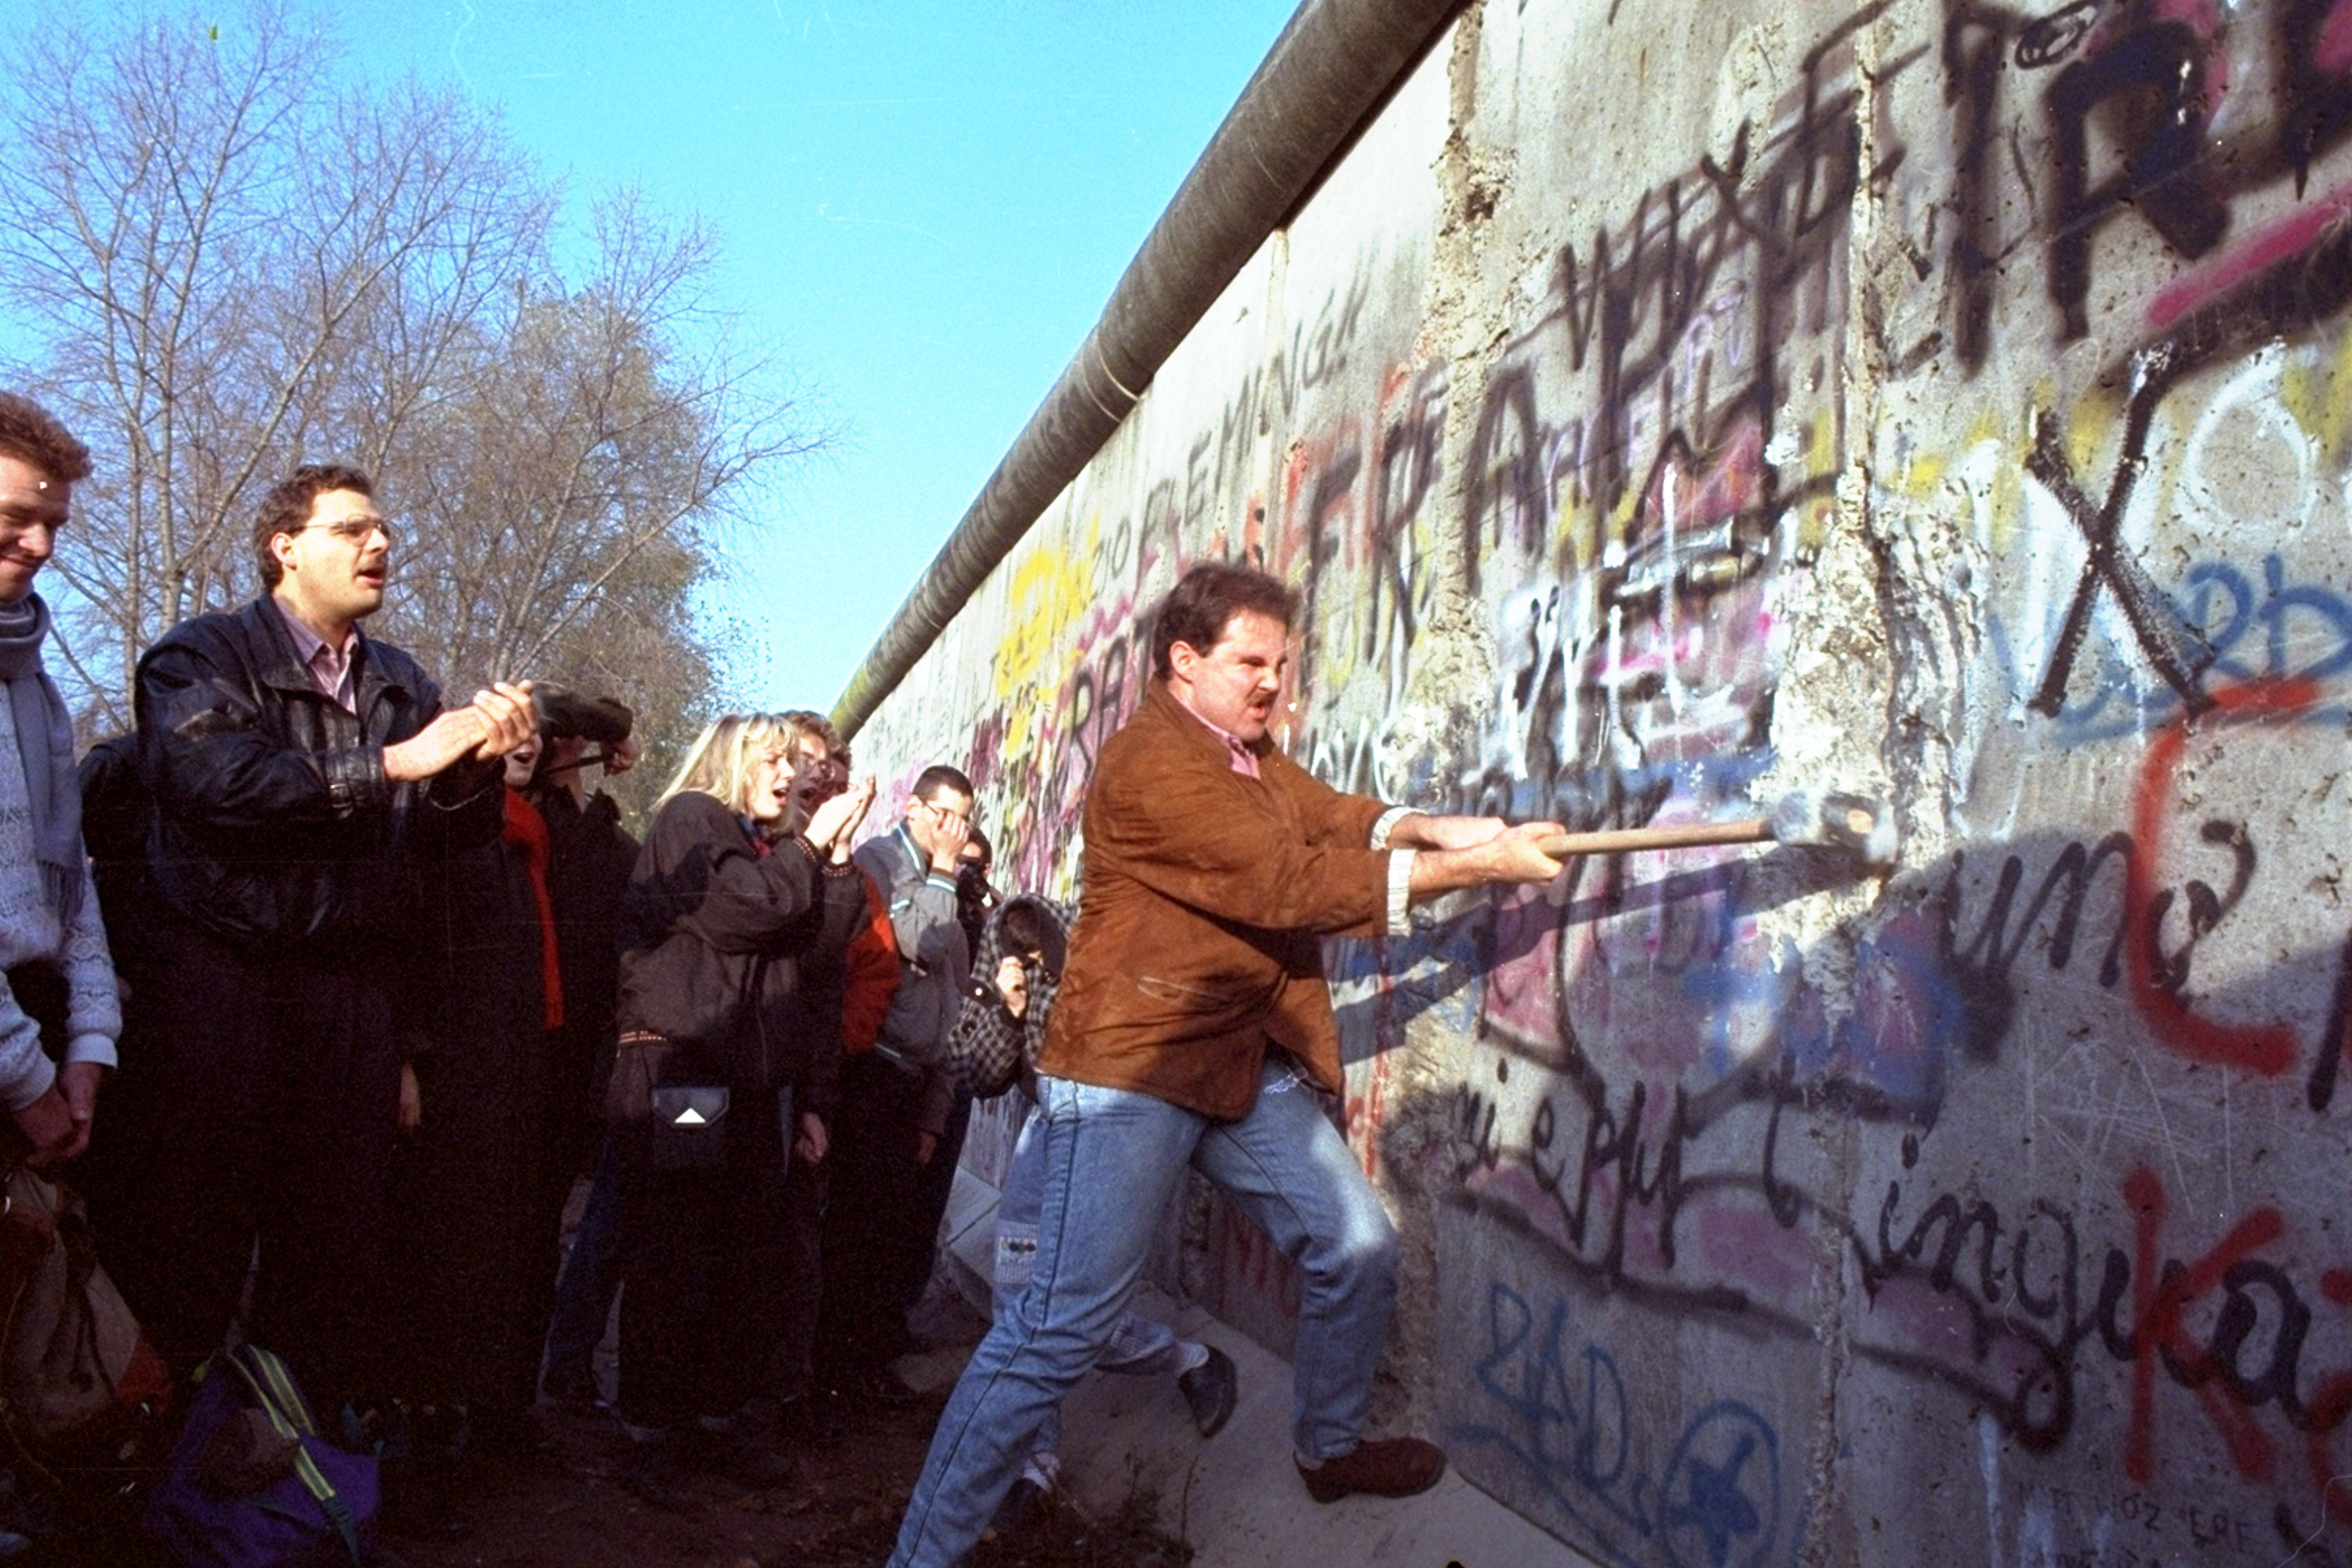 berlin wall photo essay The berlin wall essays: over 180,000 the berlin wall essays, the berlin wall term papers, the berlin wall research paper, book reports.